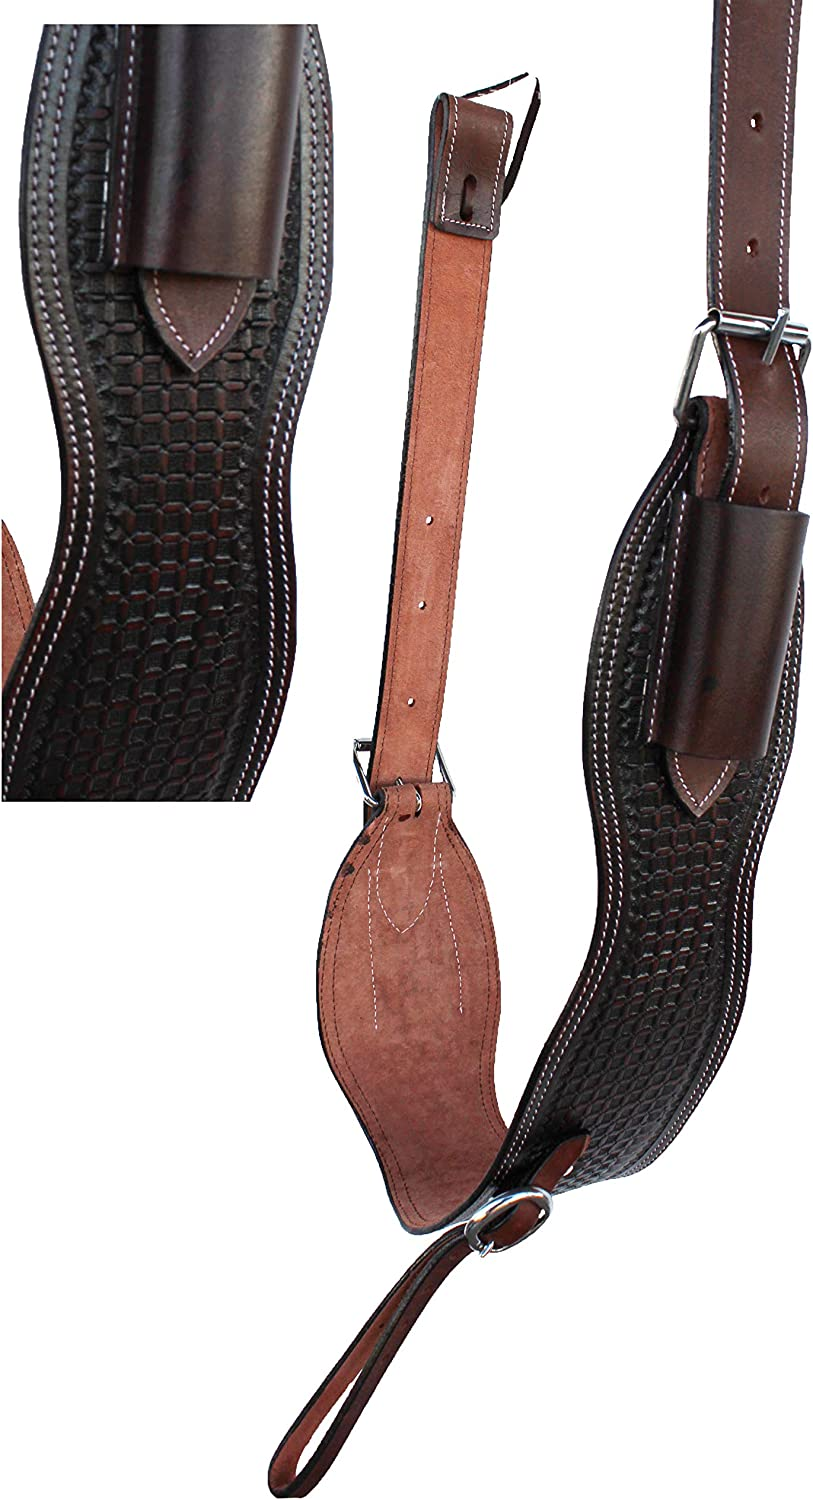 Pro Rider 30  Horse Western Brown Leather Tooled Saddle Back Flank Cinch w Billets 9743